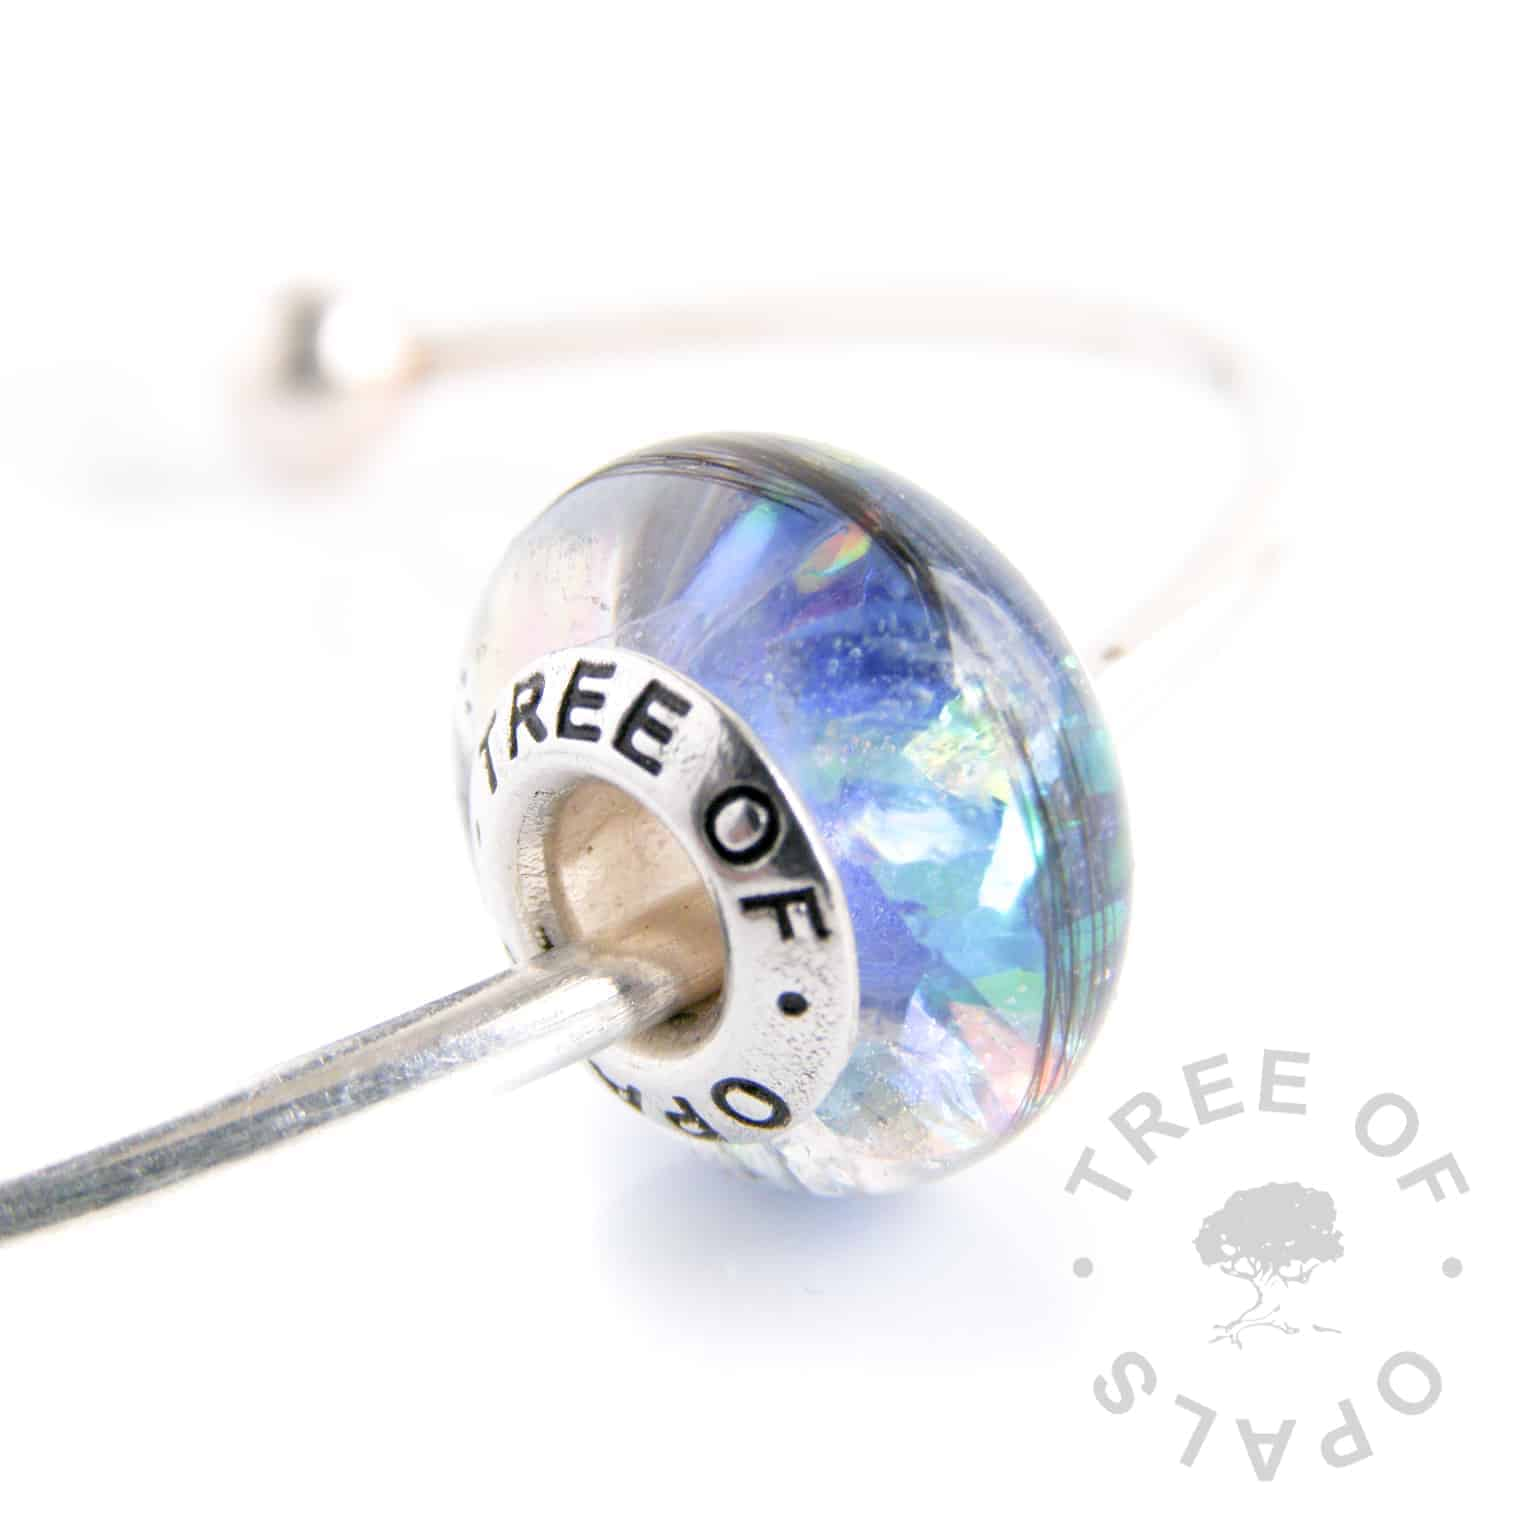 lock of hair charm bead blue opalescent flakes and Aegean blue shimmer core and solid sterling silver Tree of Opals signature core. Handmade with sterling silver by Tree of Opals